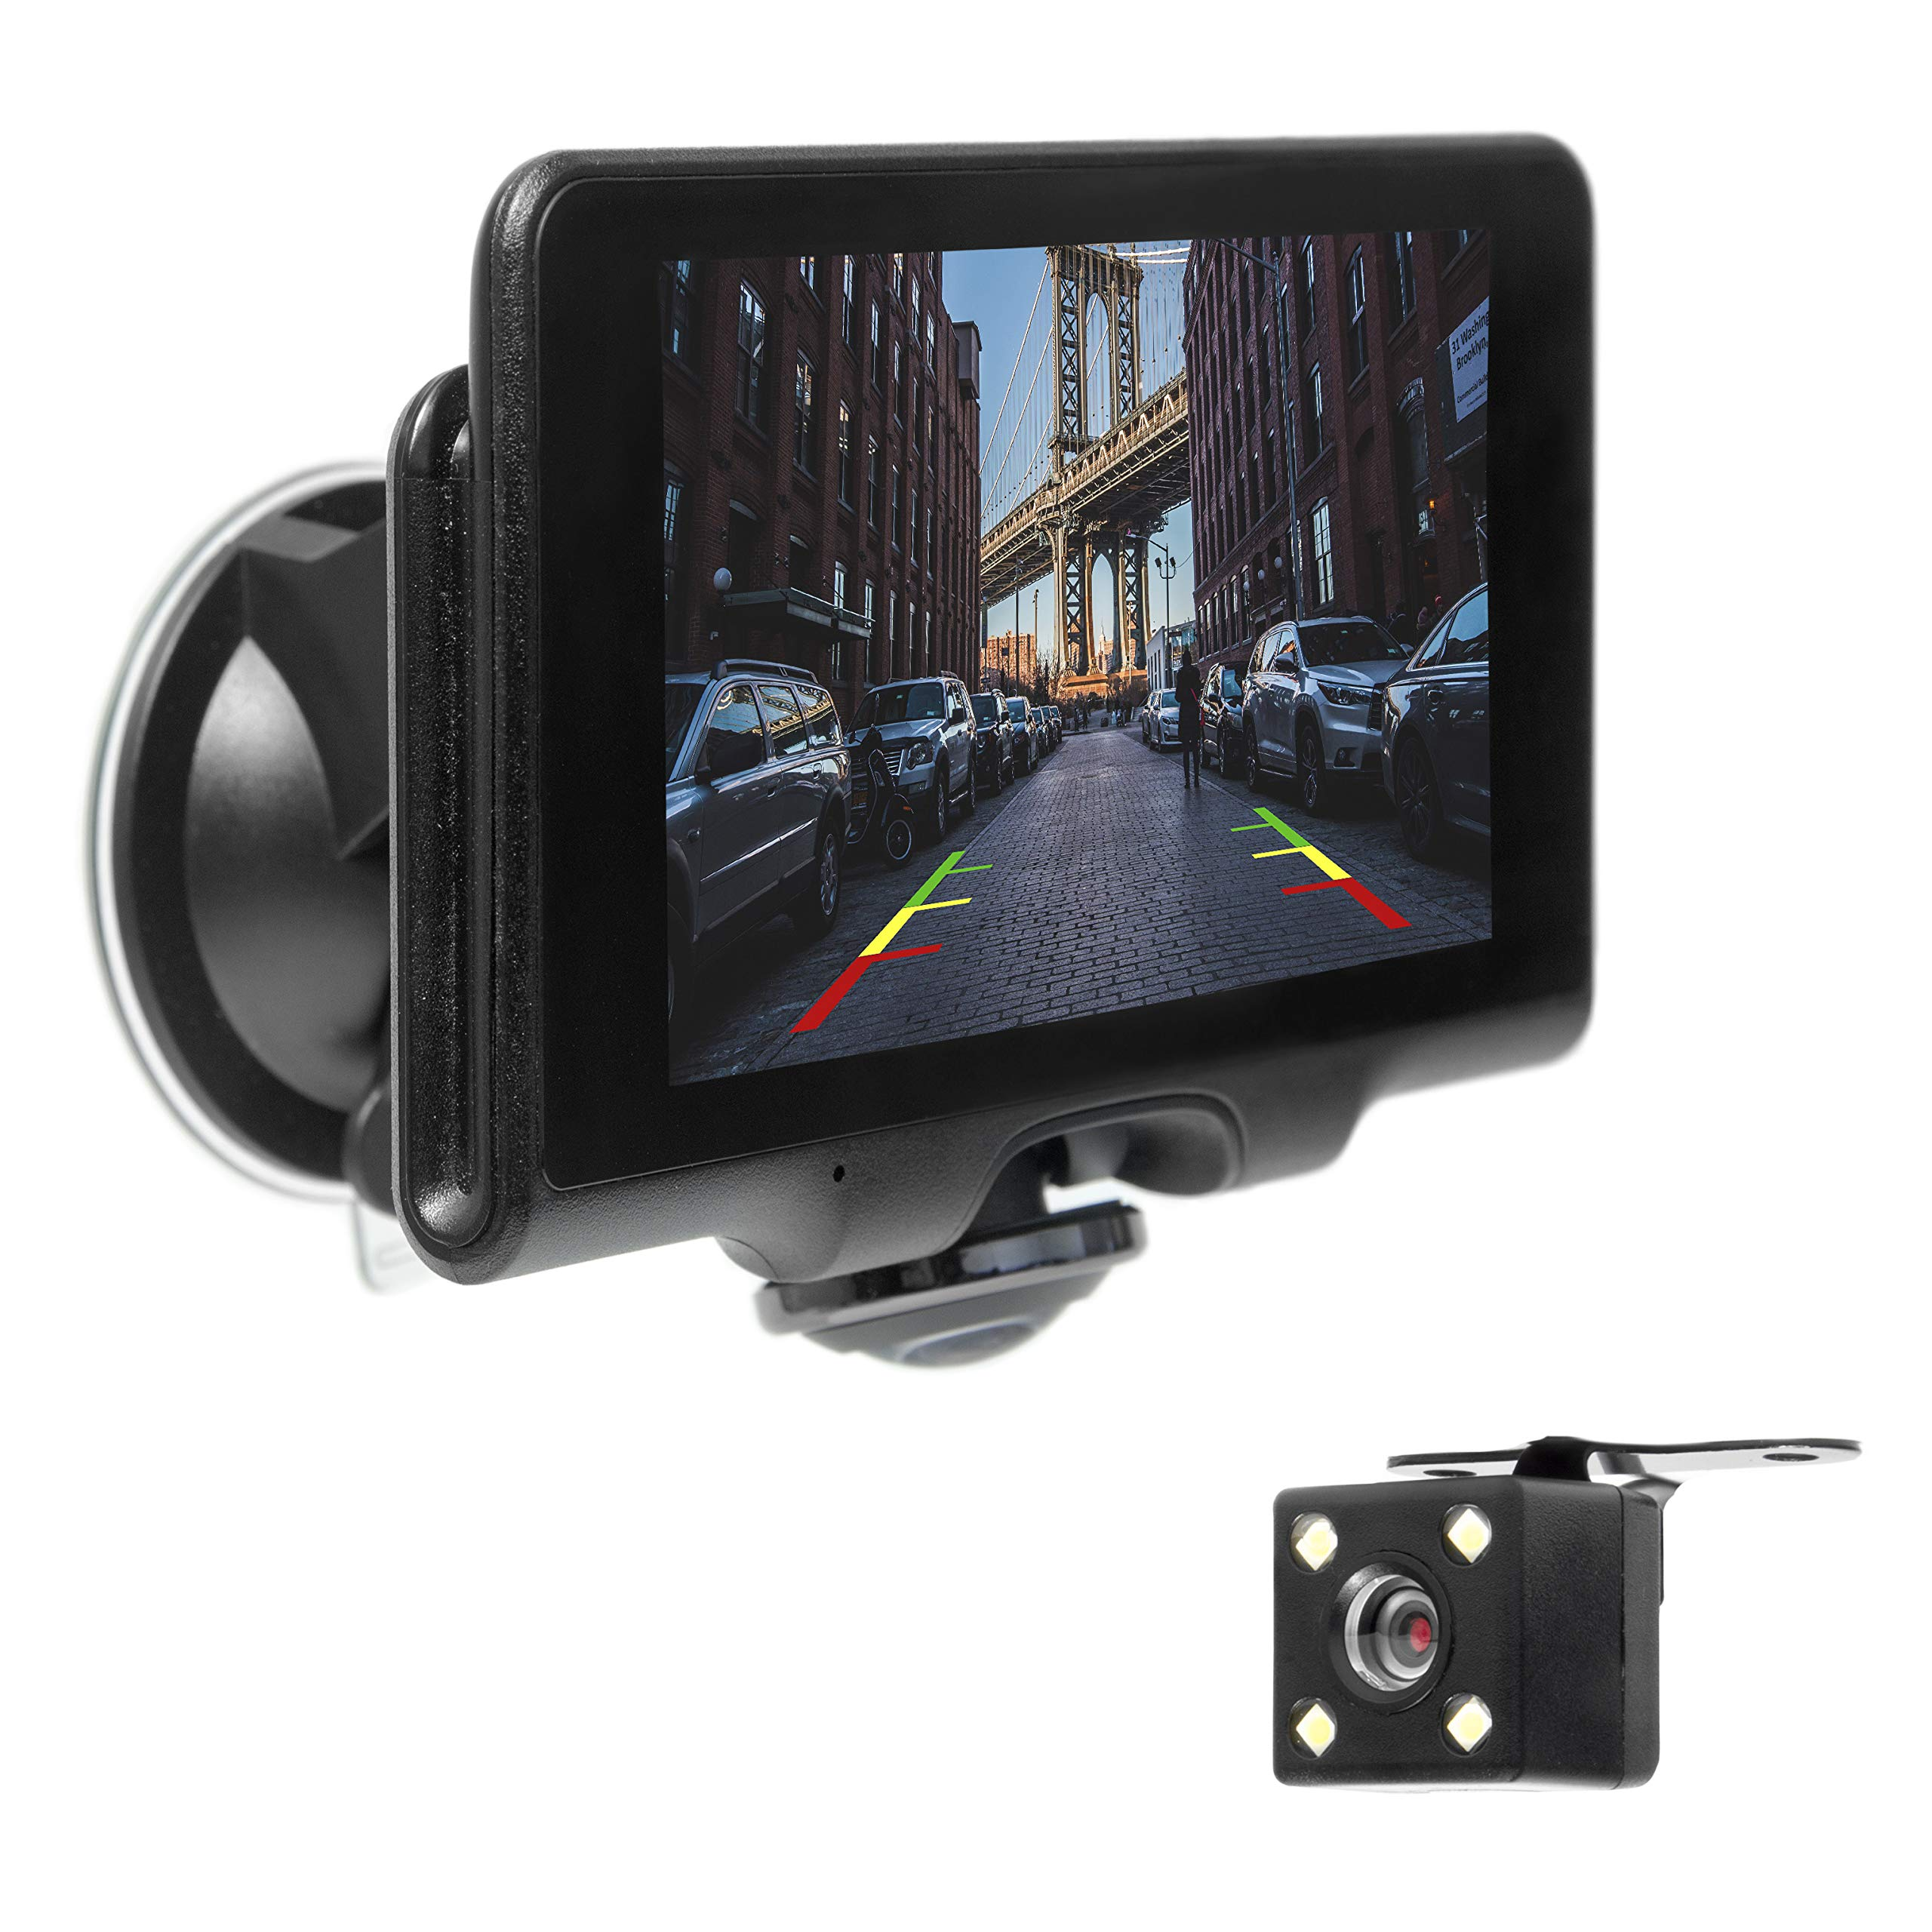 """Master Tailgaters Windshield Mount DVR Dash Cam with 5"""" Touch Screen, Four Display Modes, GPS, 1080P HD DVR Recording, and Panoramic 360° Camera DVR on The Market!"""